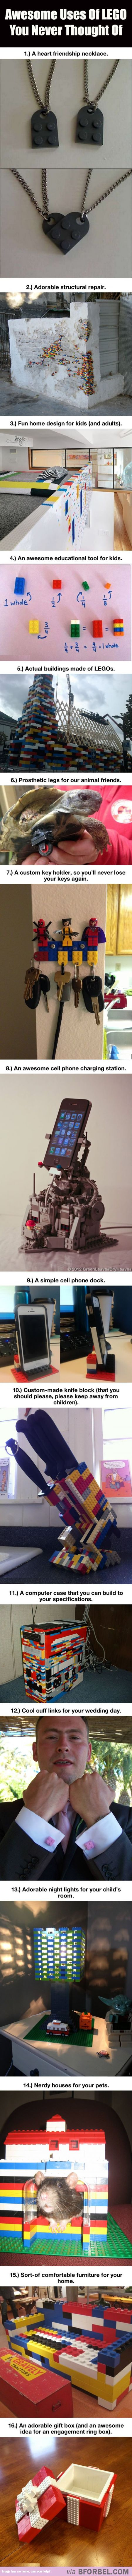 16 Awesome Uses Of LEGO You Probably Never Knew Of…